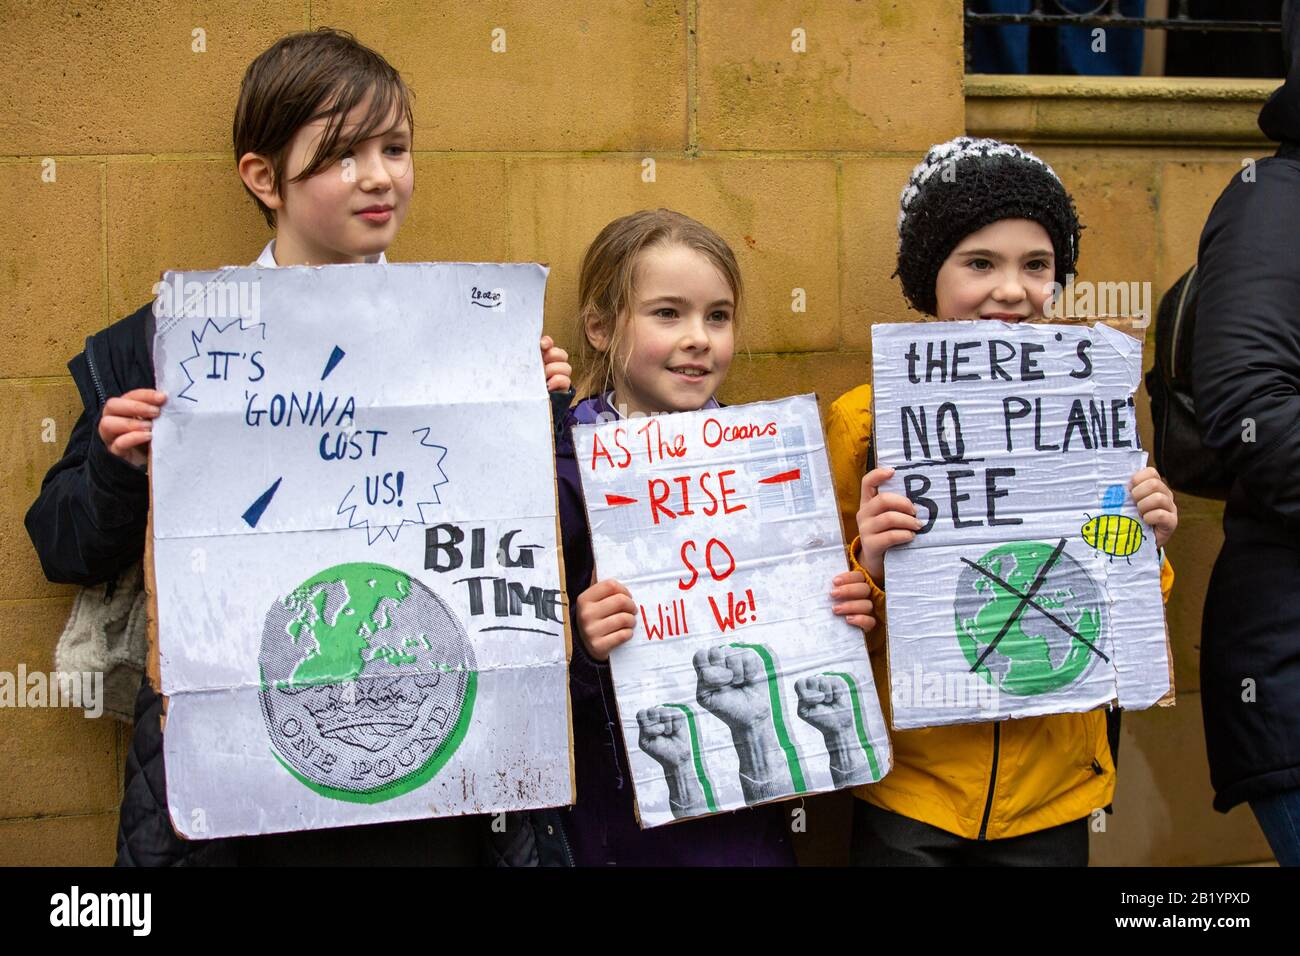 Bristol, UK. 28th Feb 2020. Greta Thunberg, the Swedish climate strike activist travels to Bristol, UK to address the Bristol Youth Strike 4 Climate. Crowds of 30,000 gathered on College Green before marching around the city. Credit: Rob Hawkins/Alamy Live News Stock Photo